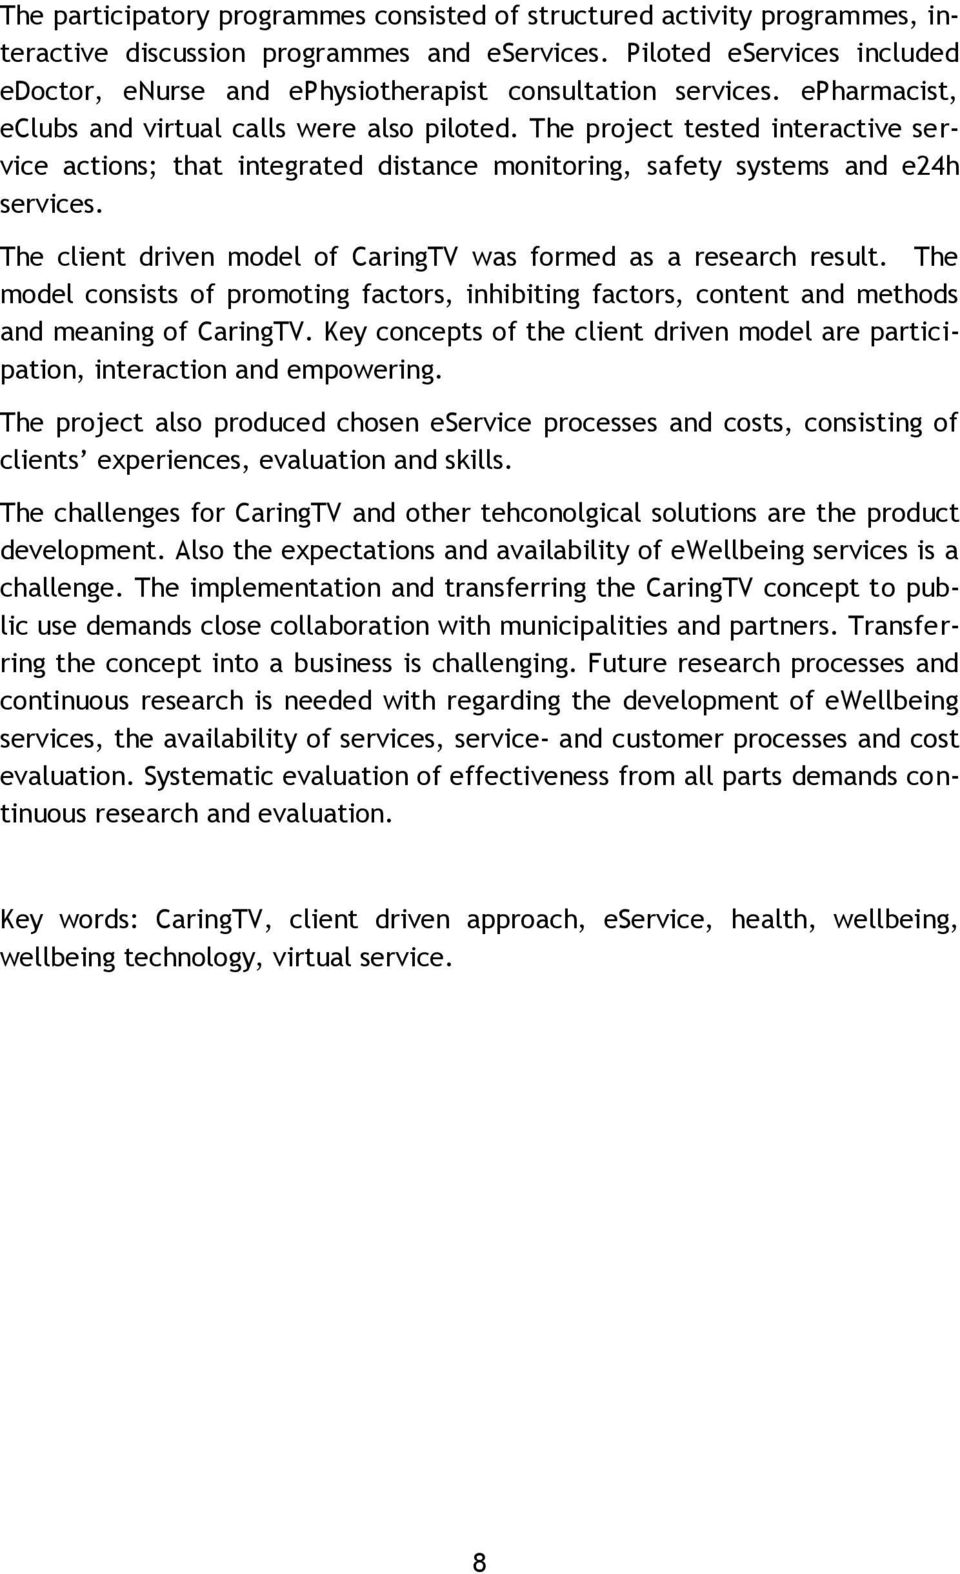 The project tested interactive service actions; that integrated distance monitoring, safety systems and e24h services. The client driven model of CaringTV was formed as a research result.